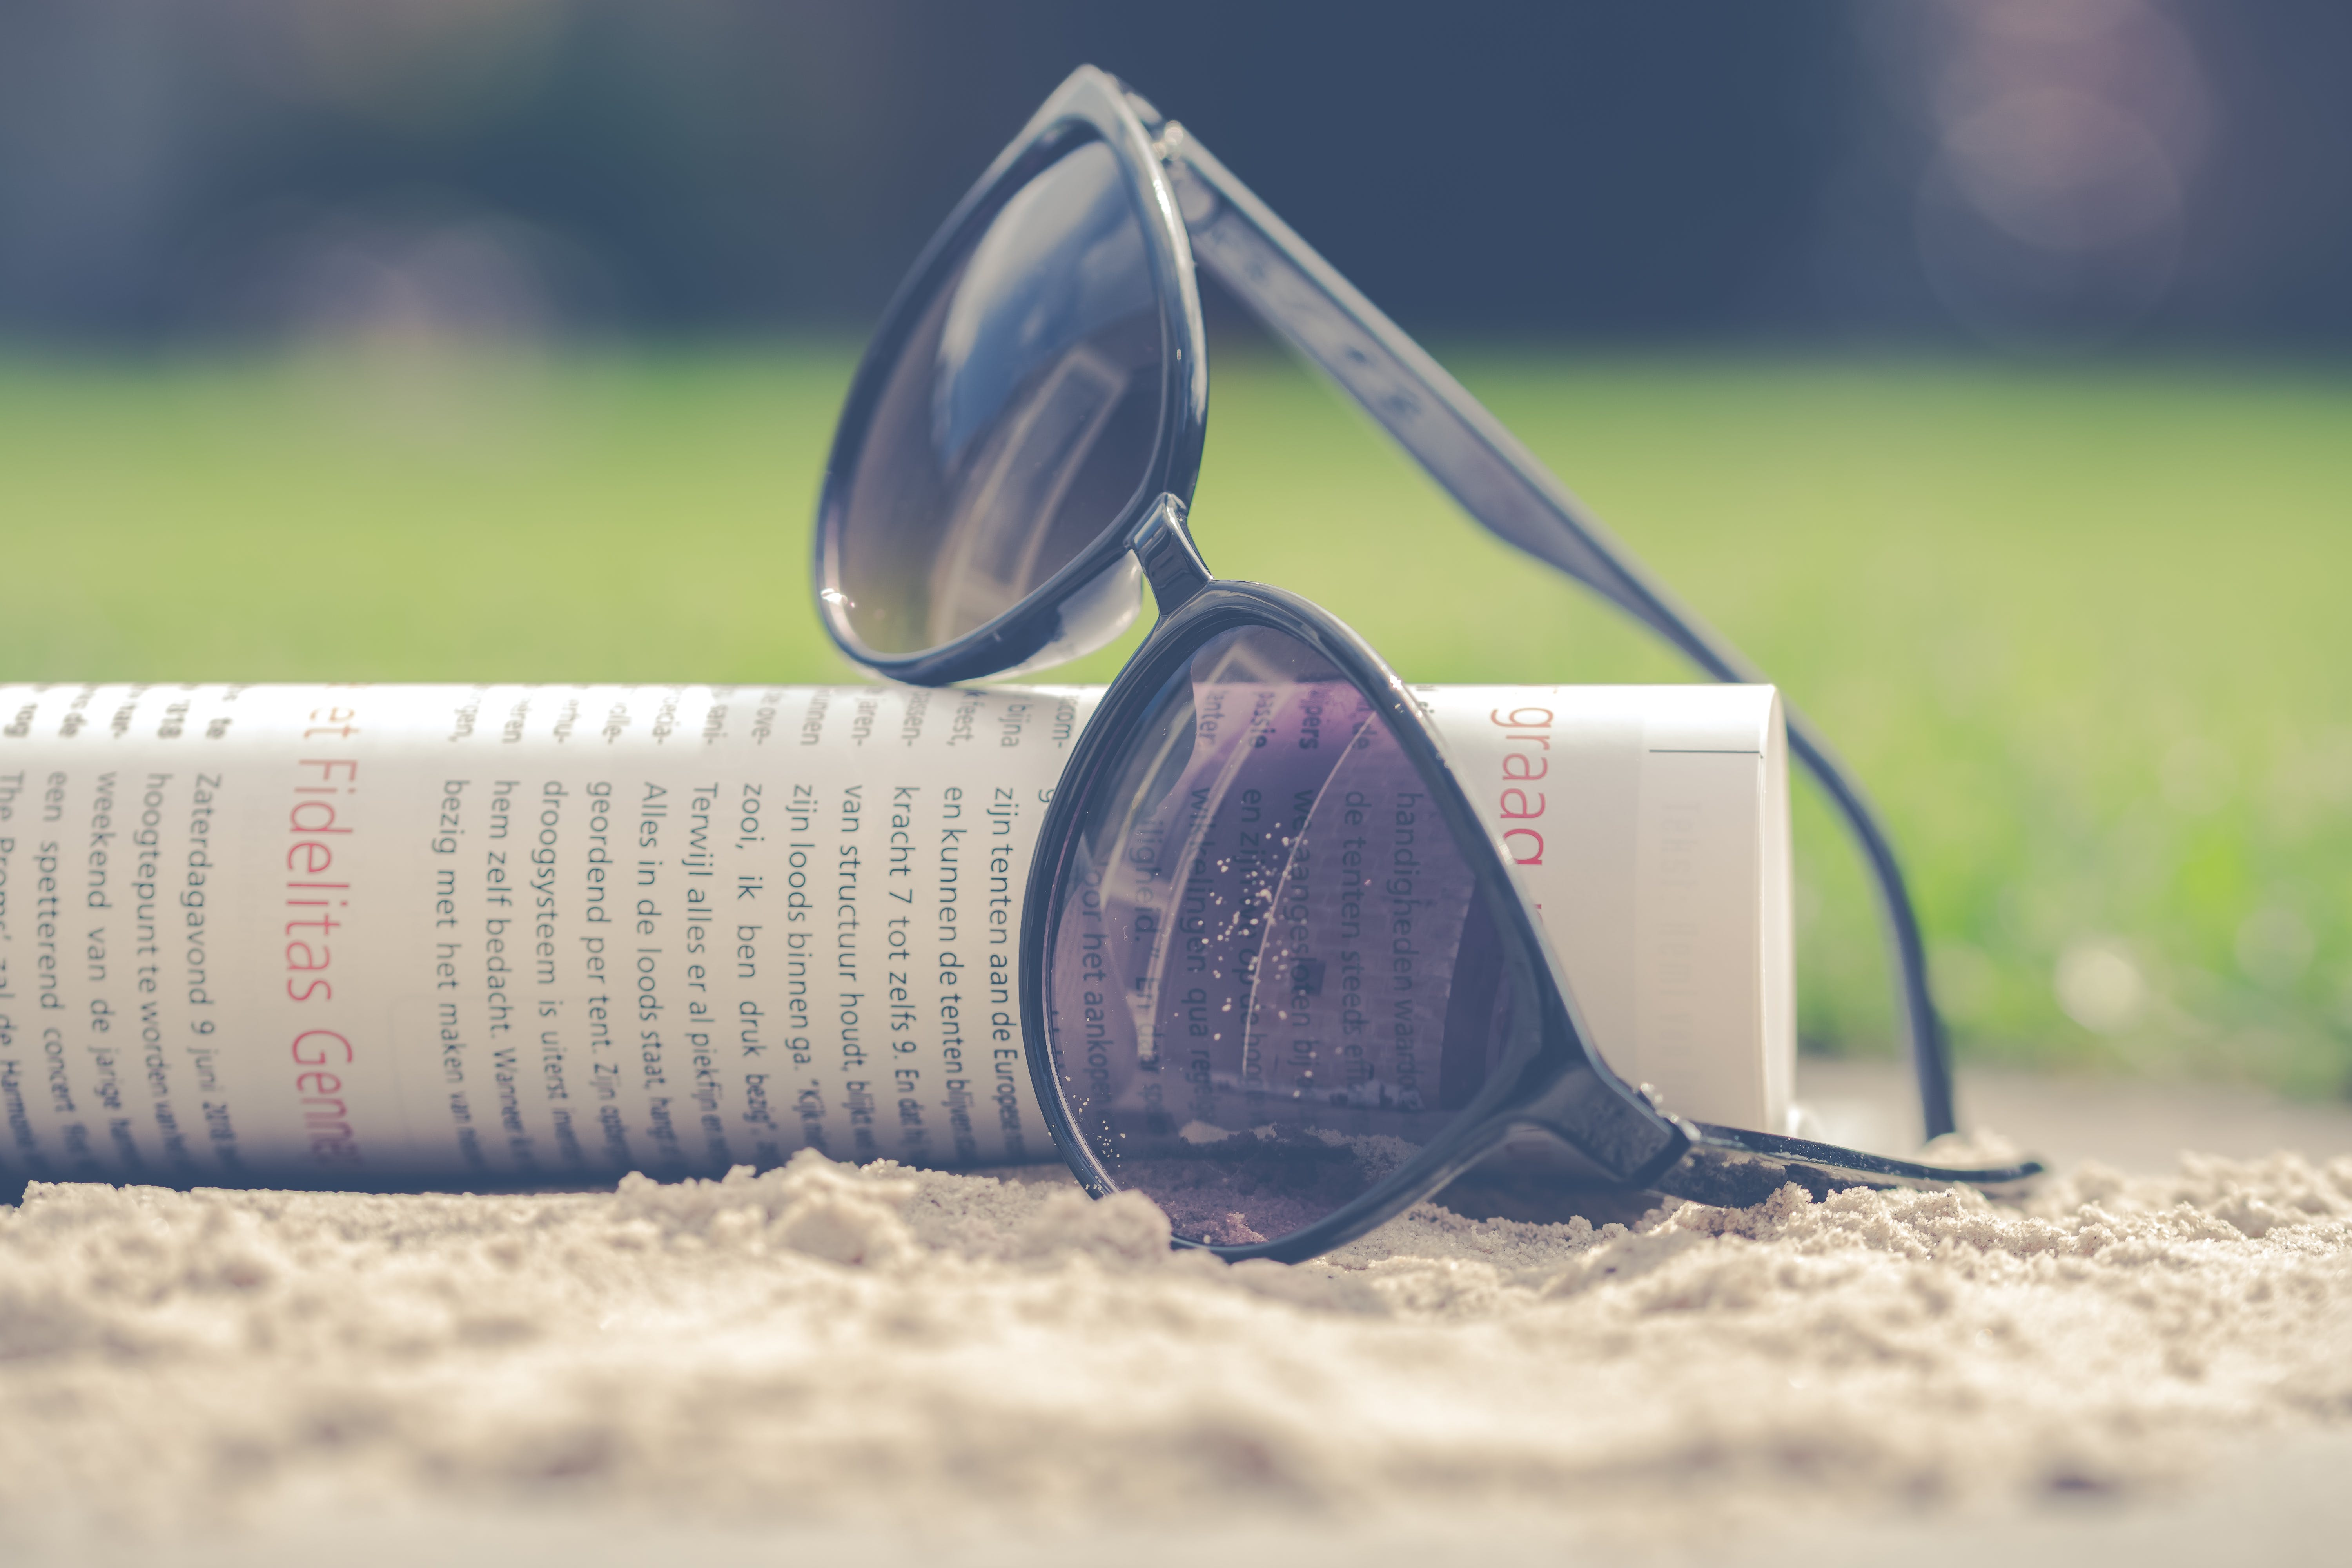 Black Sunglasses on Book